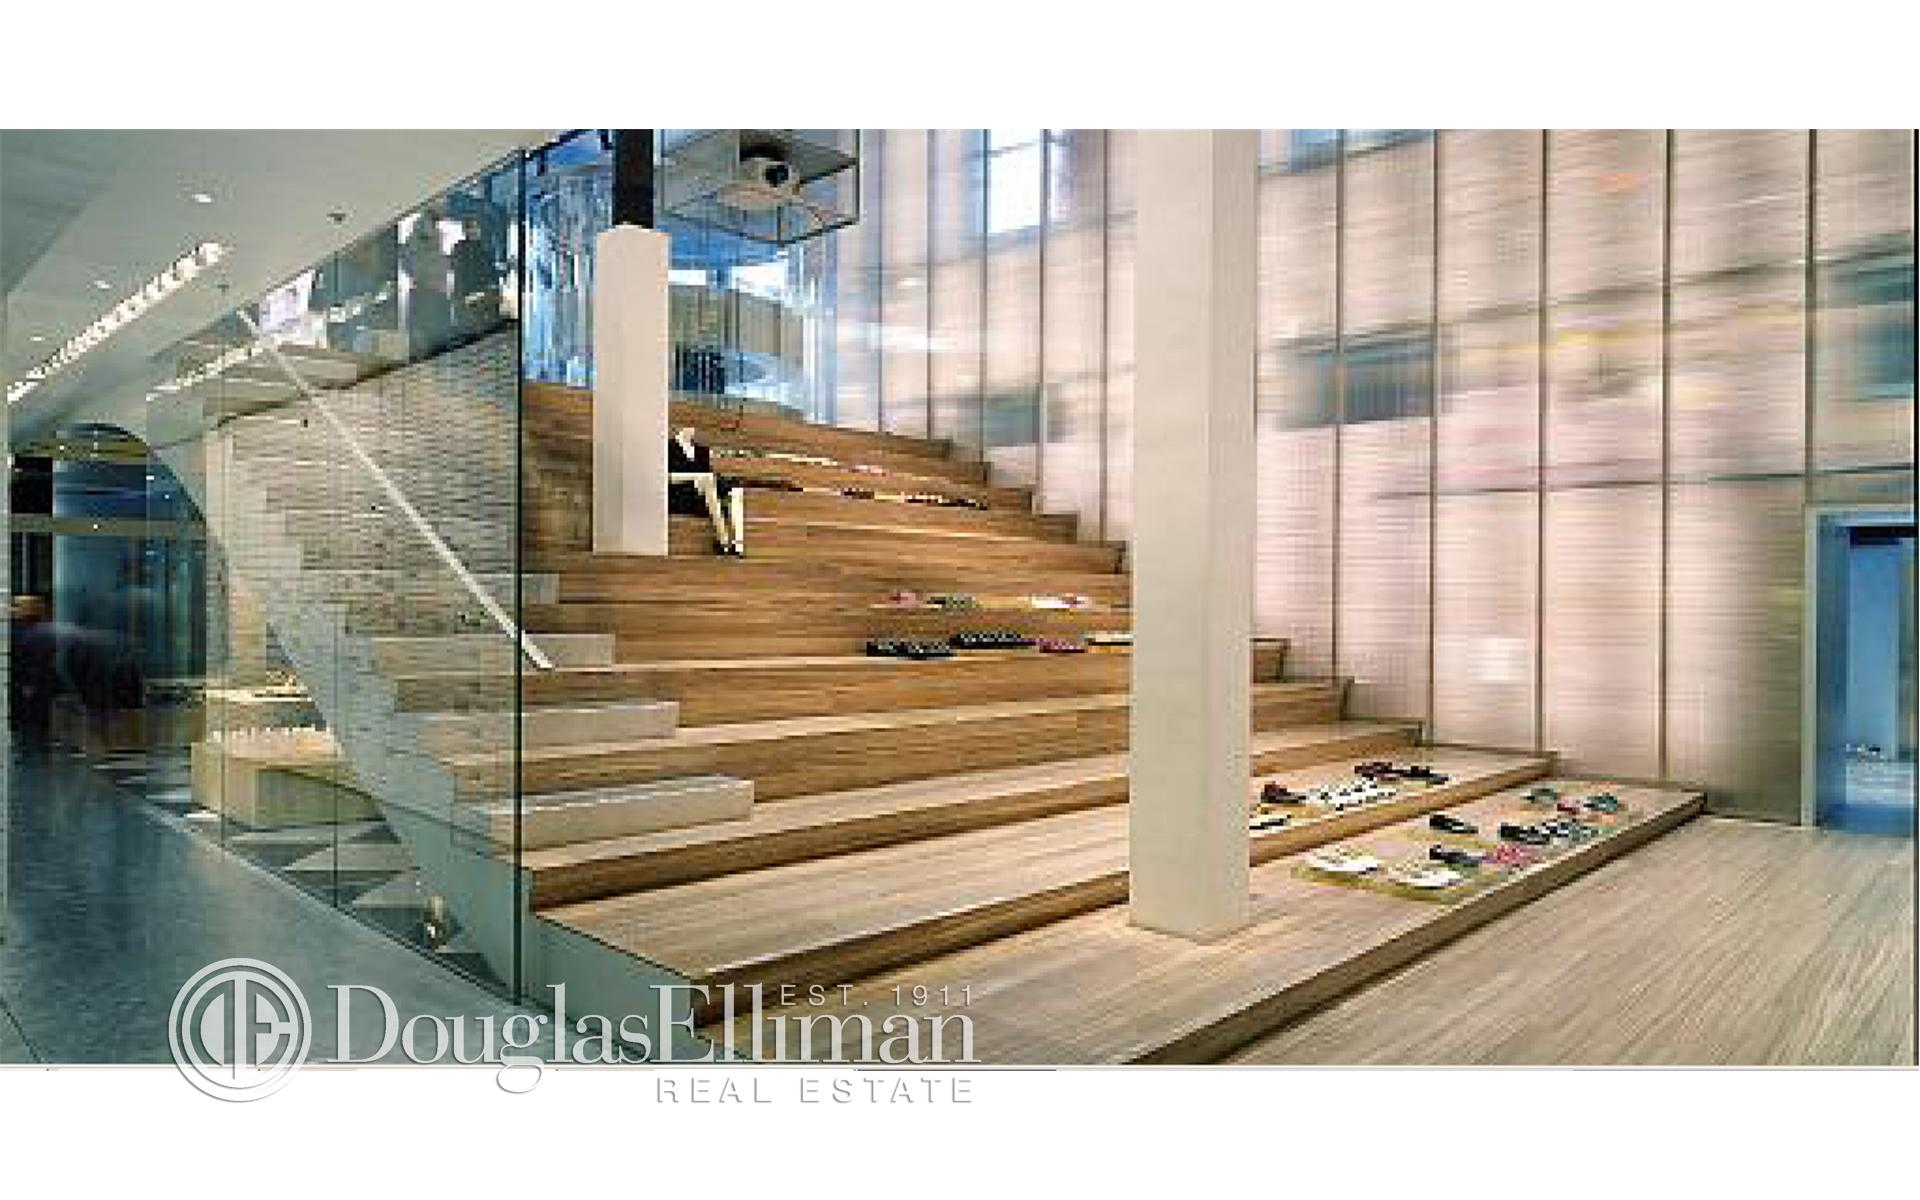 Single Family for Sale at Park Avenue 517 Park Avenue New York, New York 10022 United States